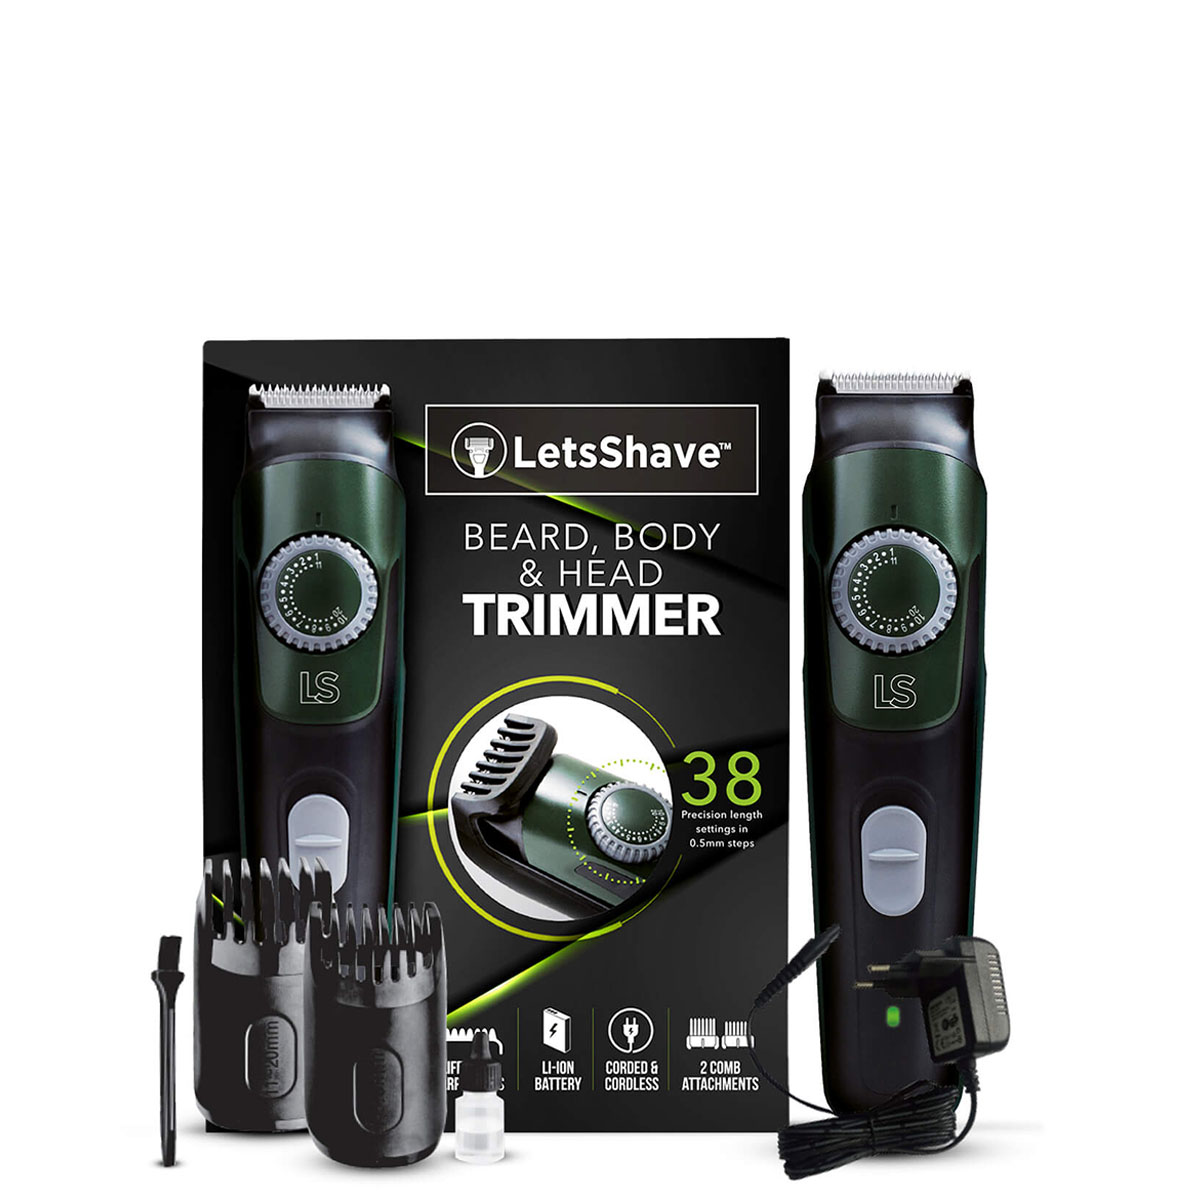 LetsShave | LetsShave Beard, Body & Head Trimmer - Fast Charge, 38 Precision Length Setting, Cord & Cordless Usage